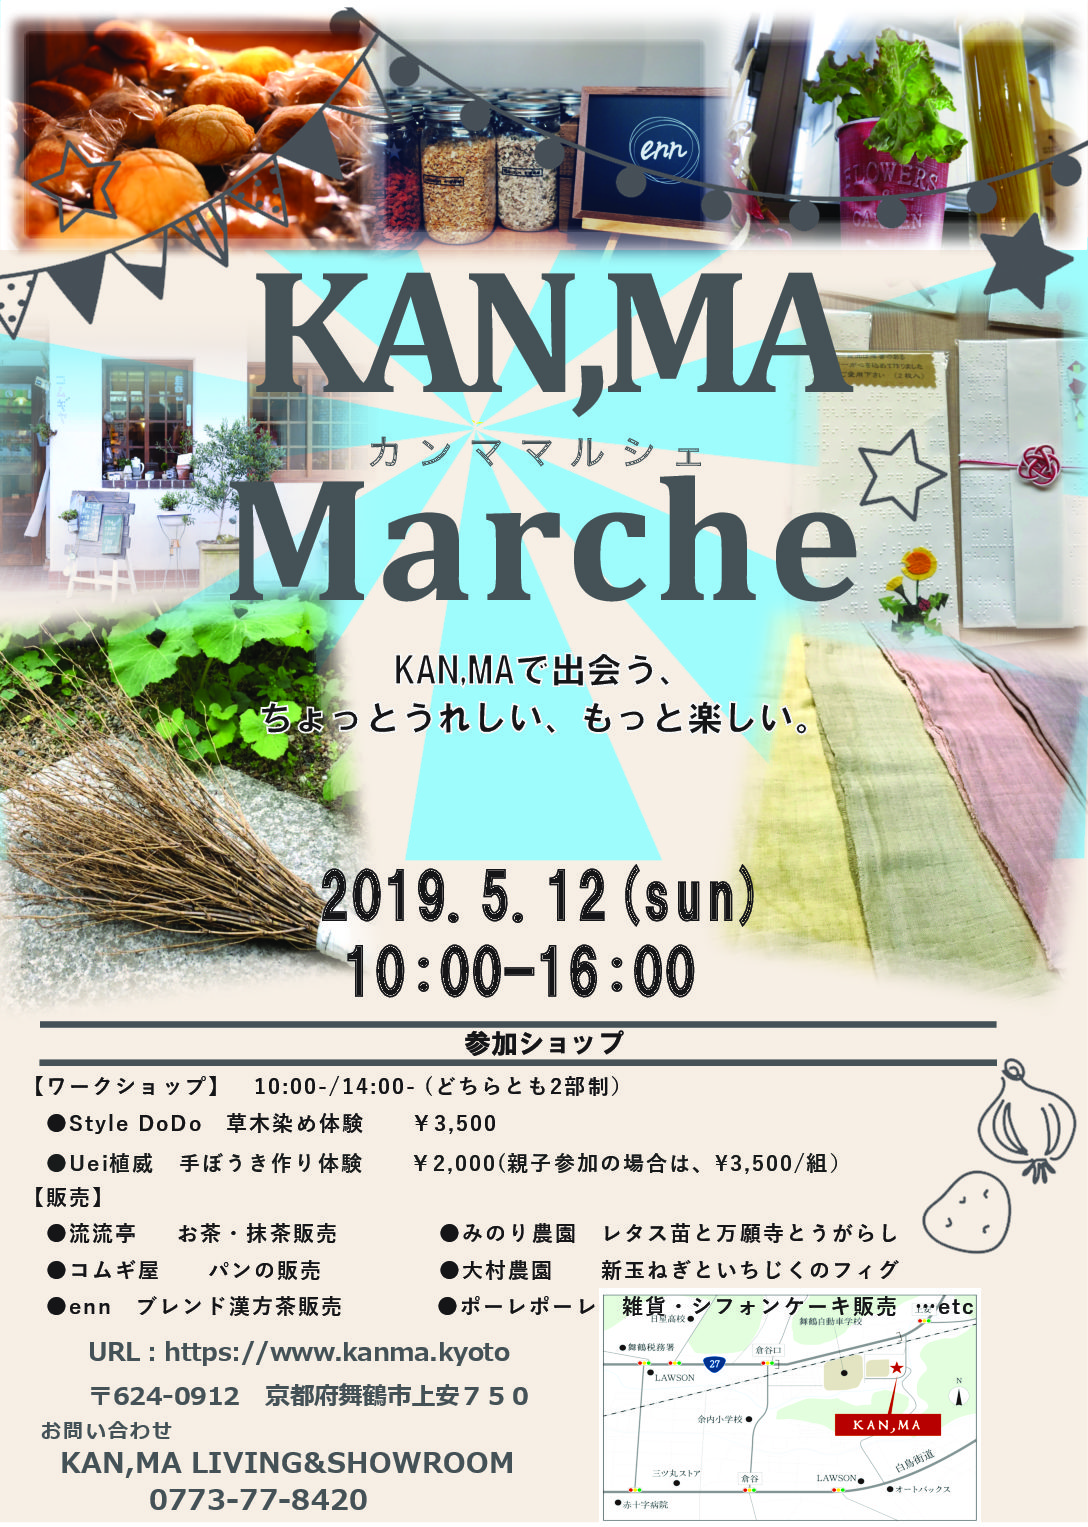 ☆KAN,MAマルシェ情報☆